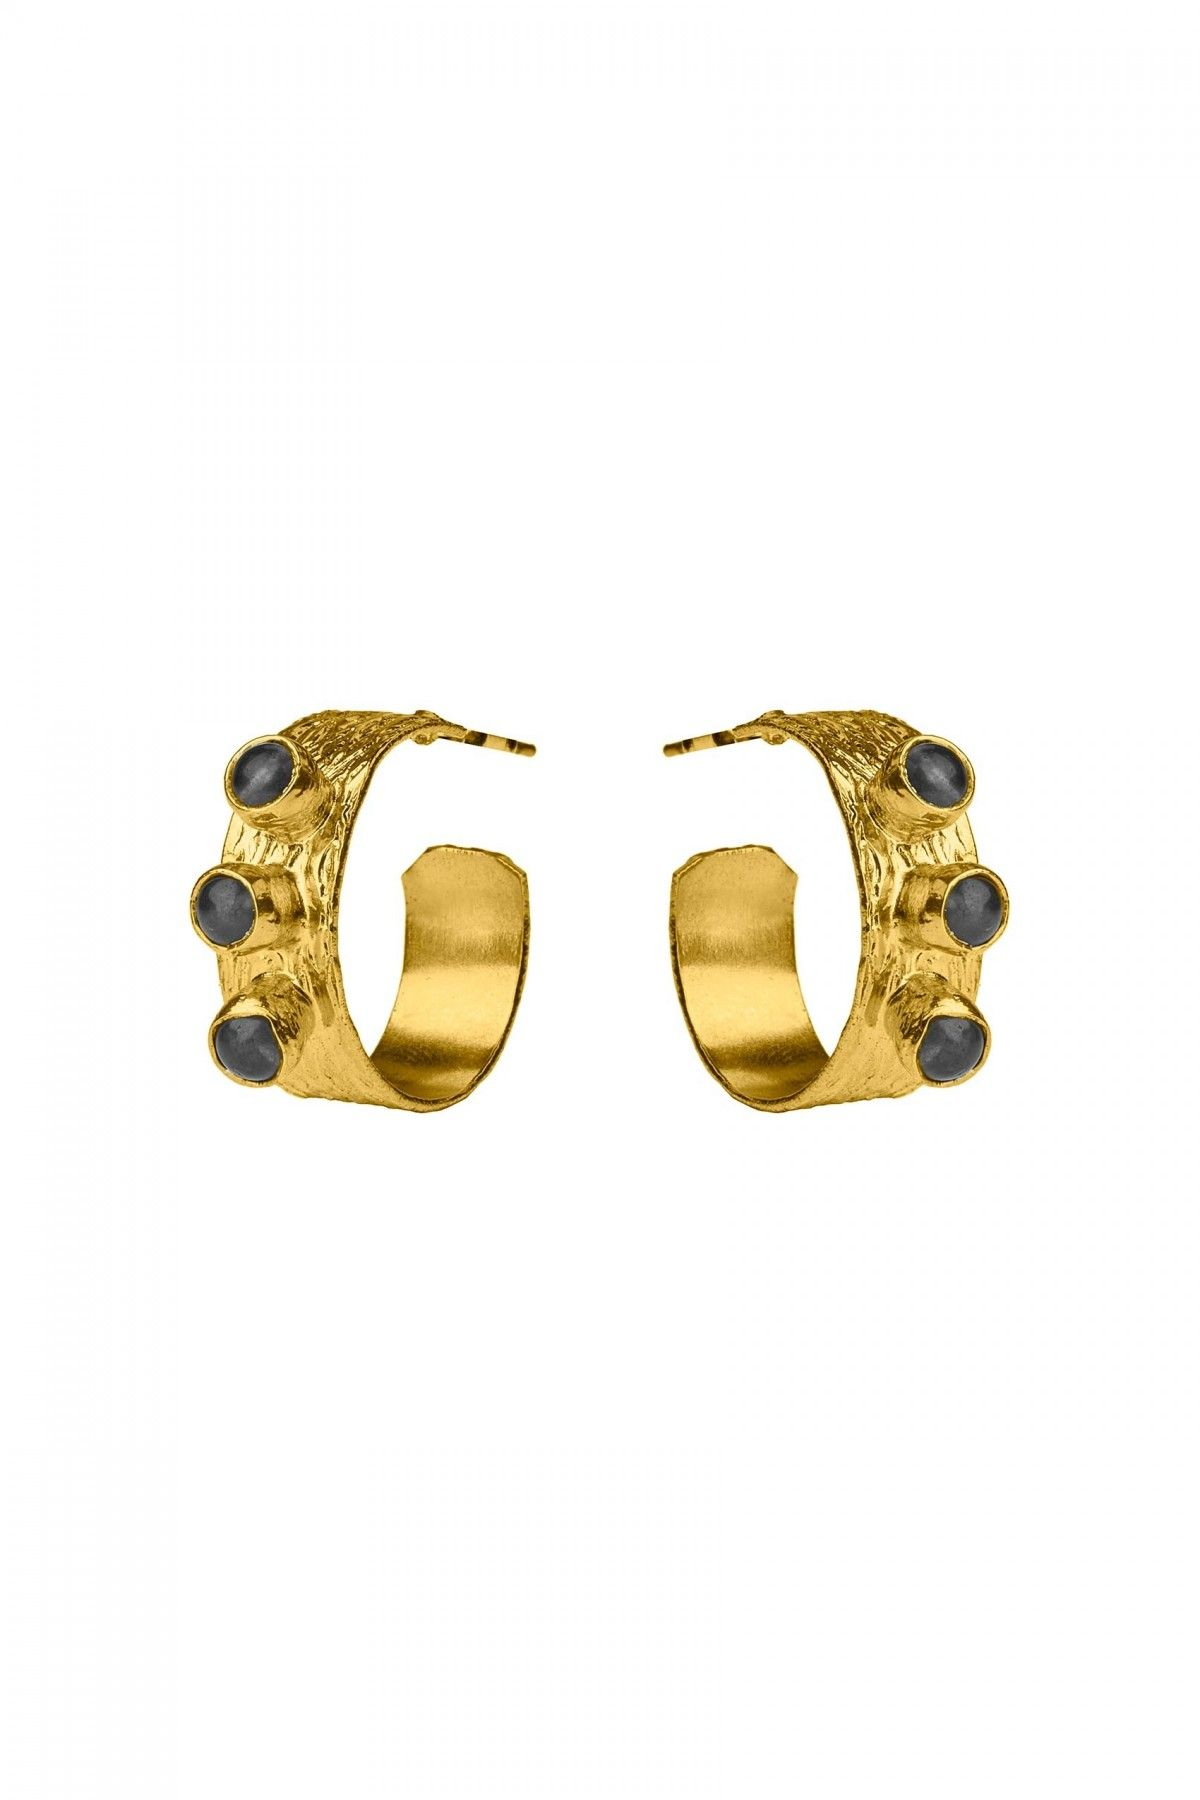 Cappadocia Earrings